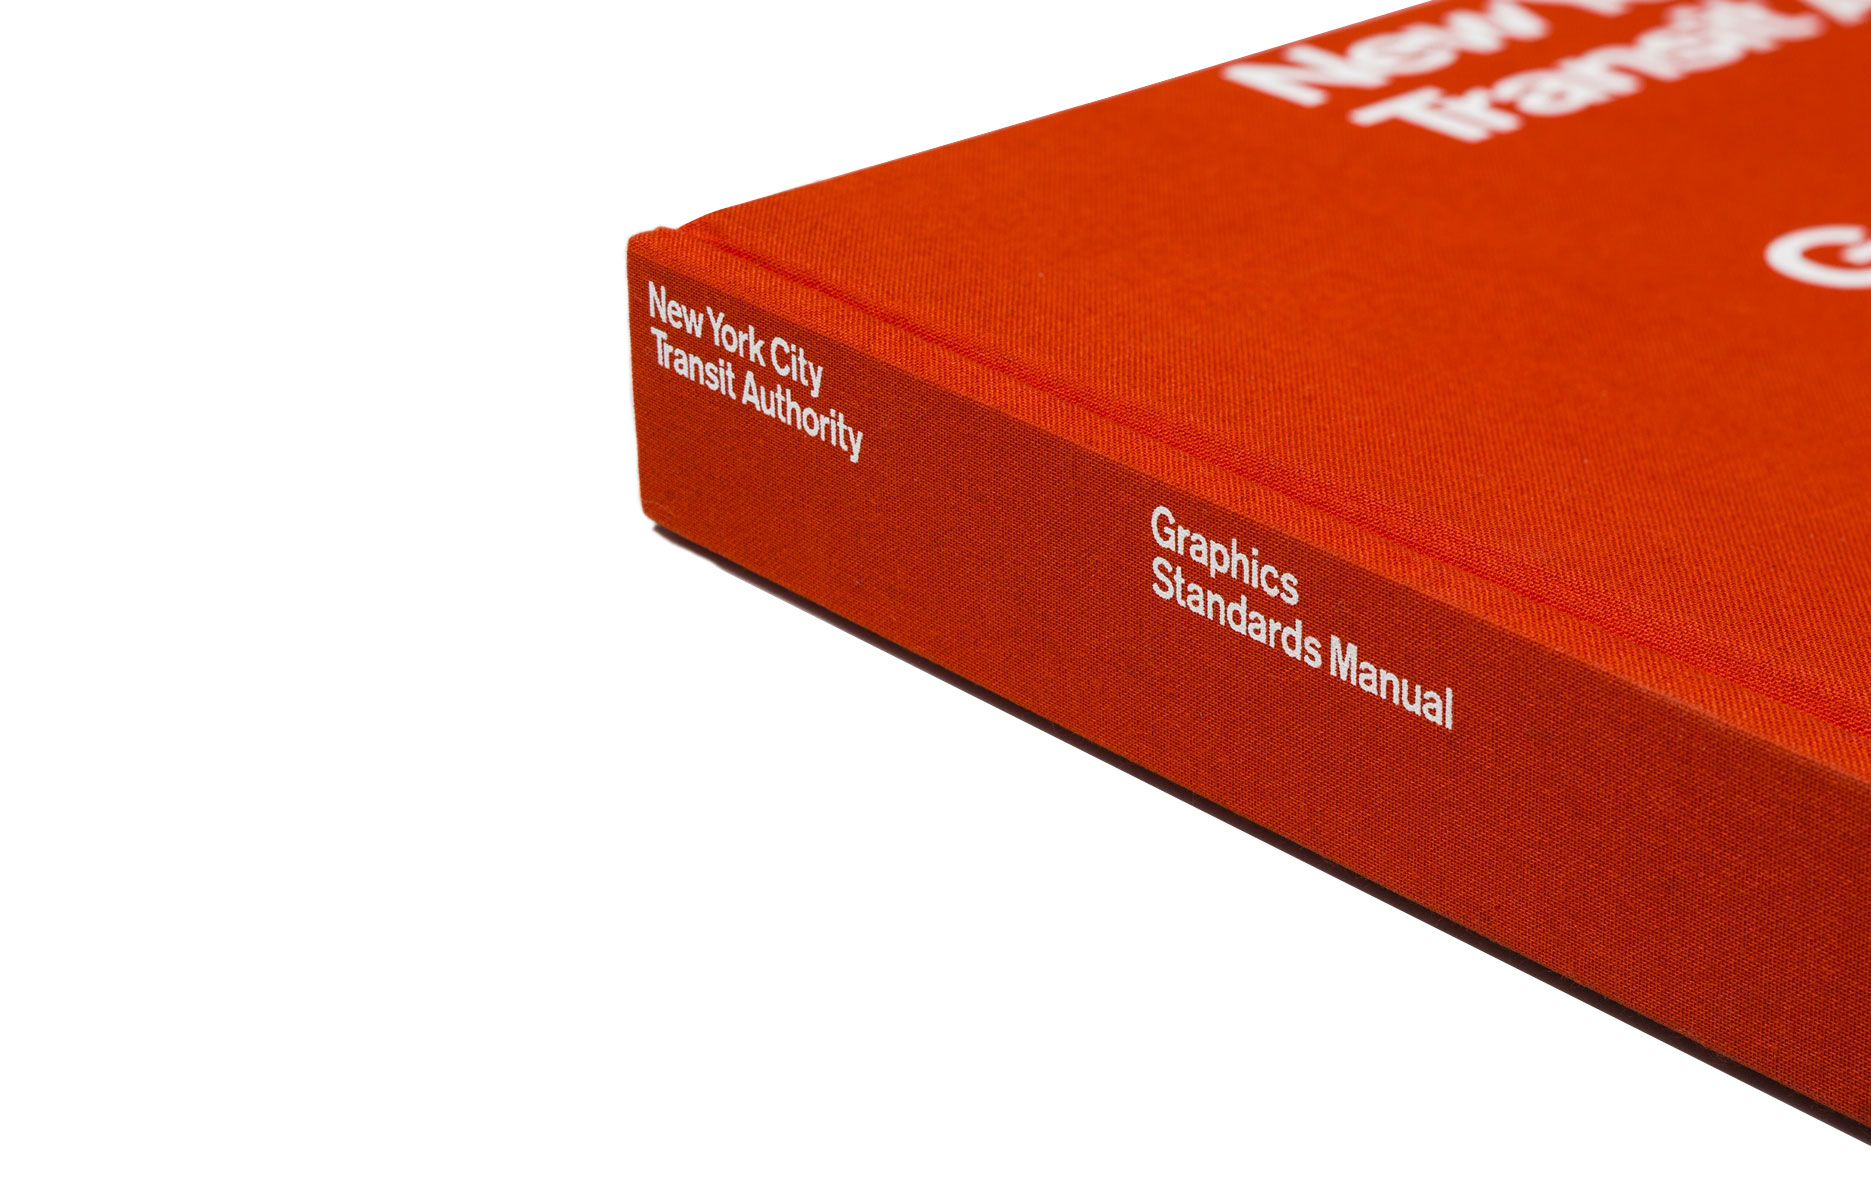 The NYCTA Graphics Standards Manual reissue